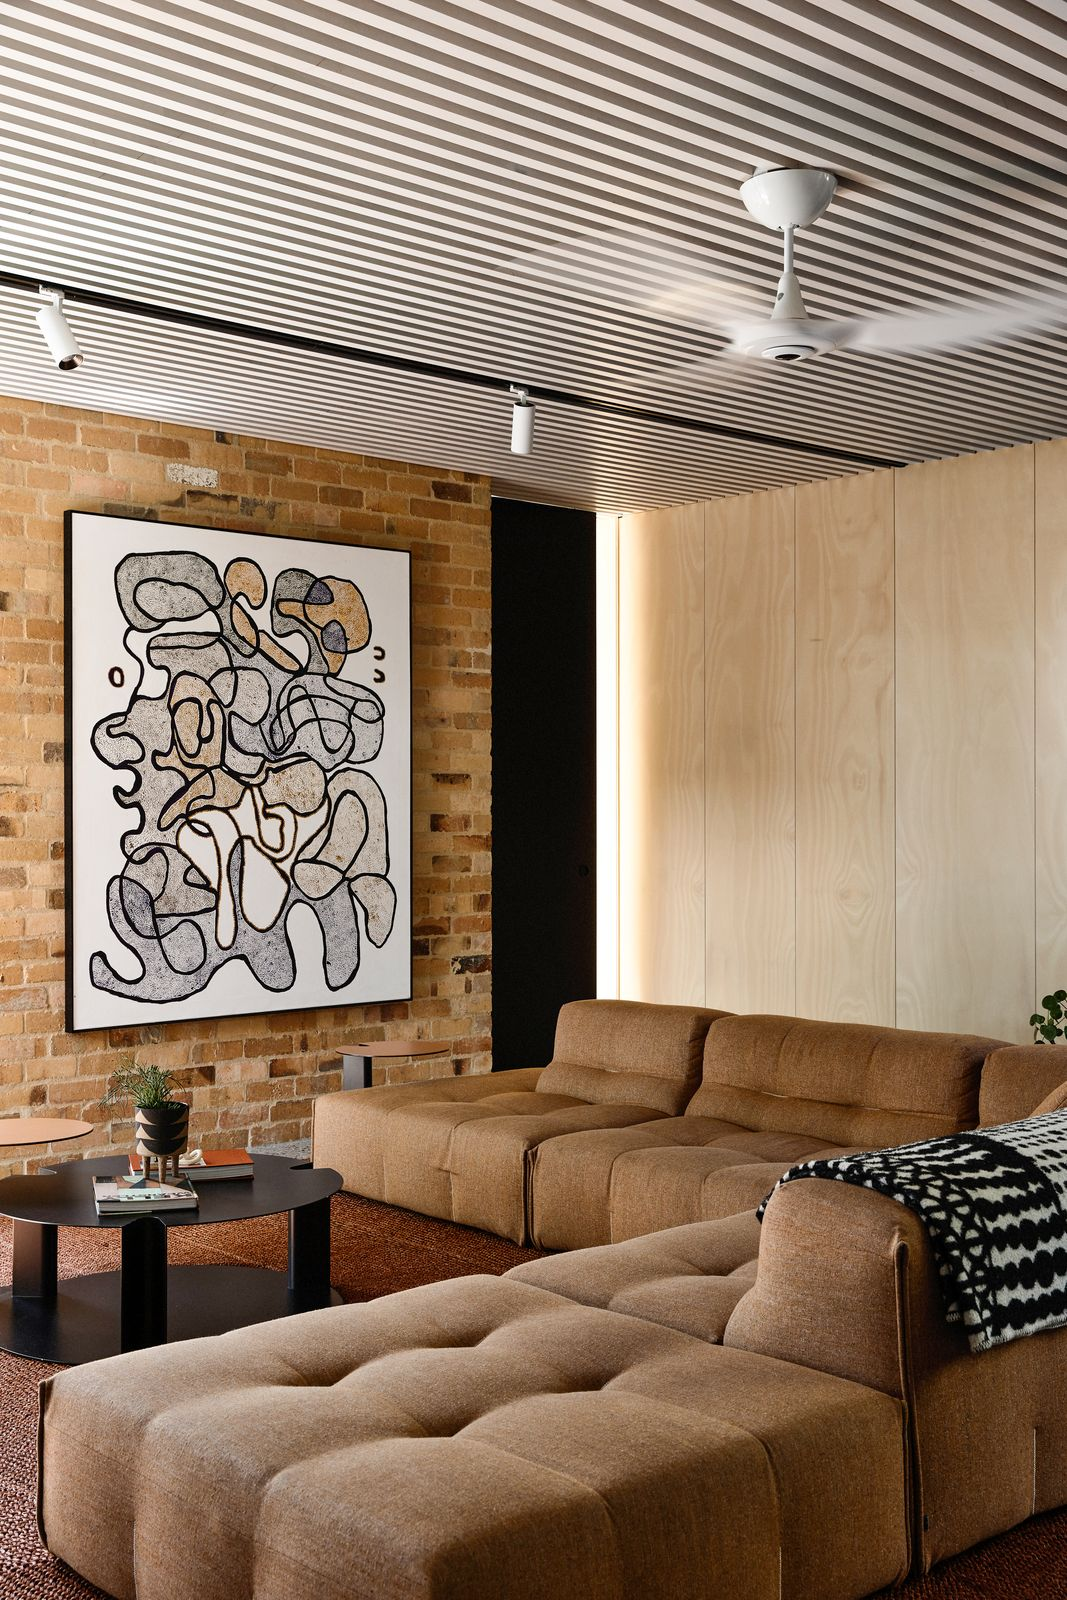 Casual lounge with timber and brick walls